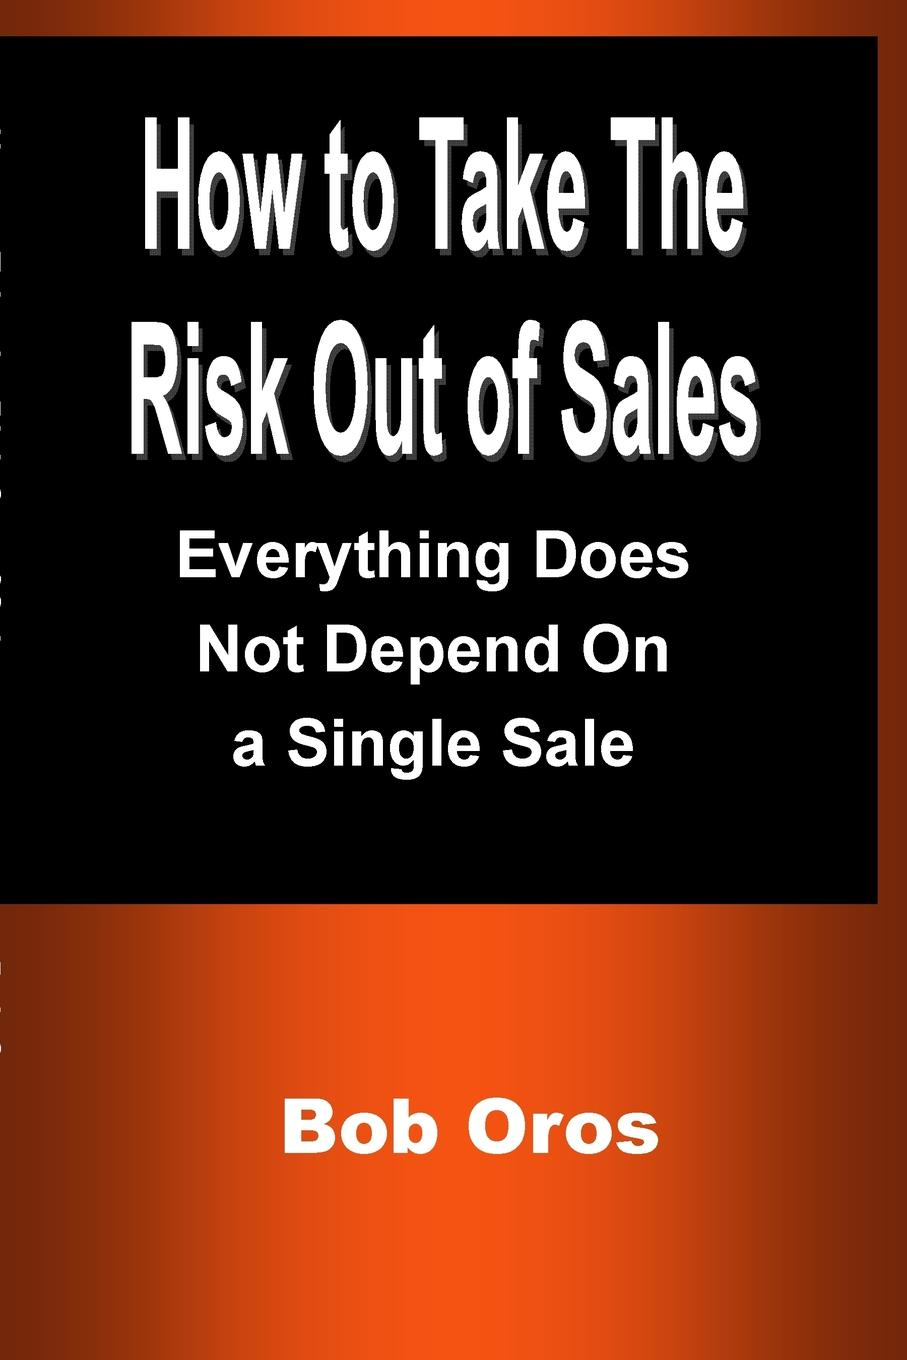 How to Take the Risk Out of Sales. Everything Does Not Depend On a Single Sale The risk that an insurance company takes on policyholder...